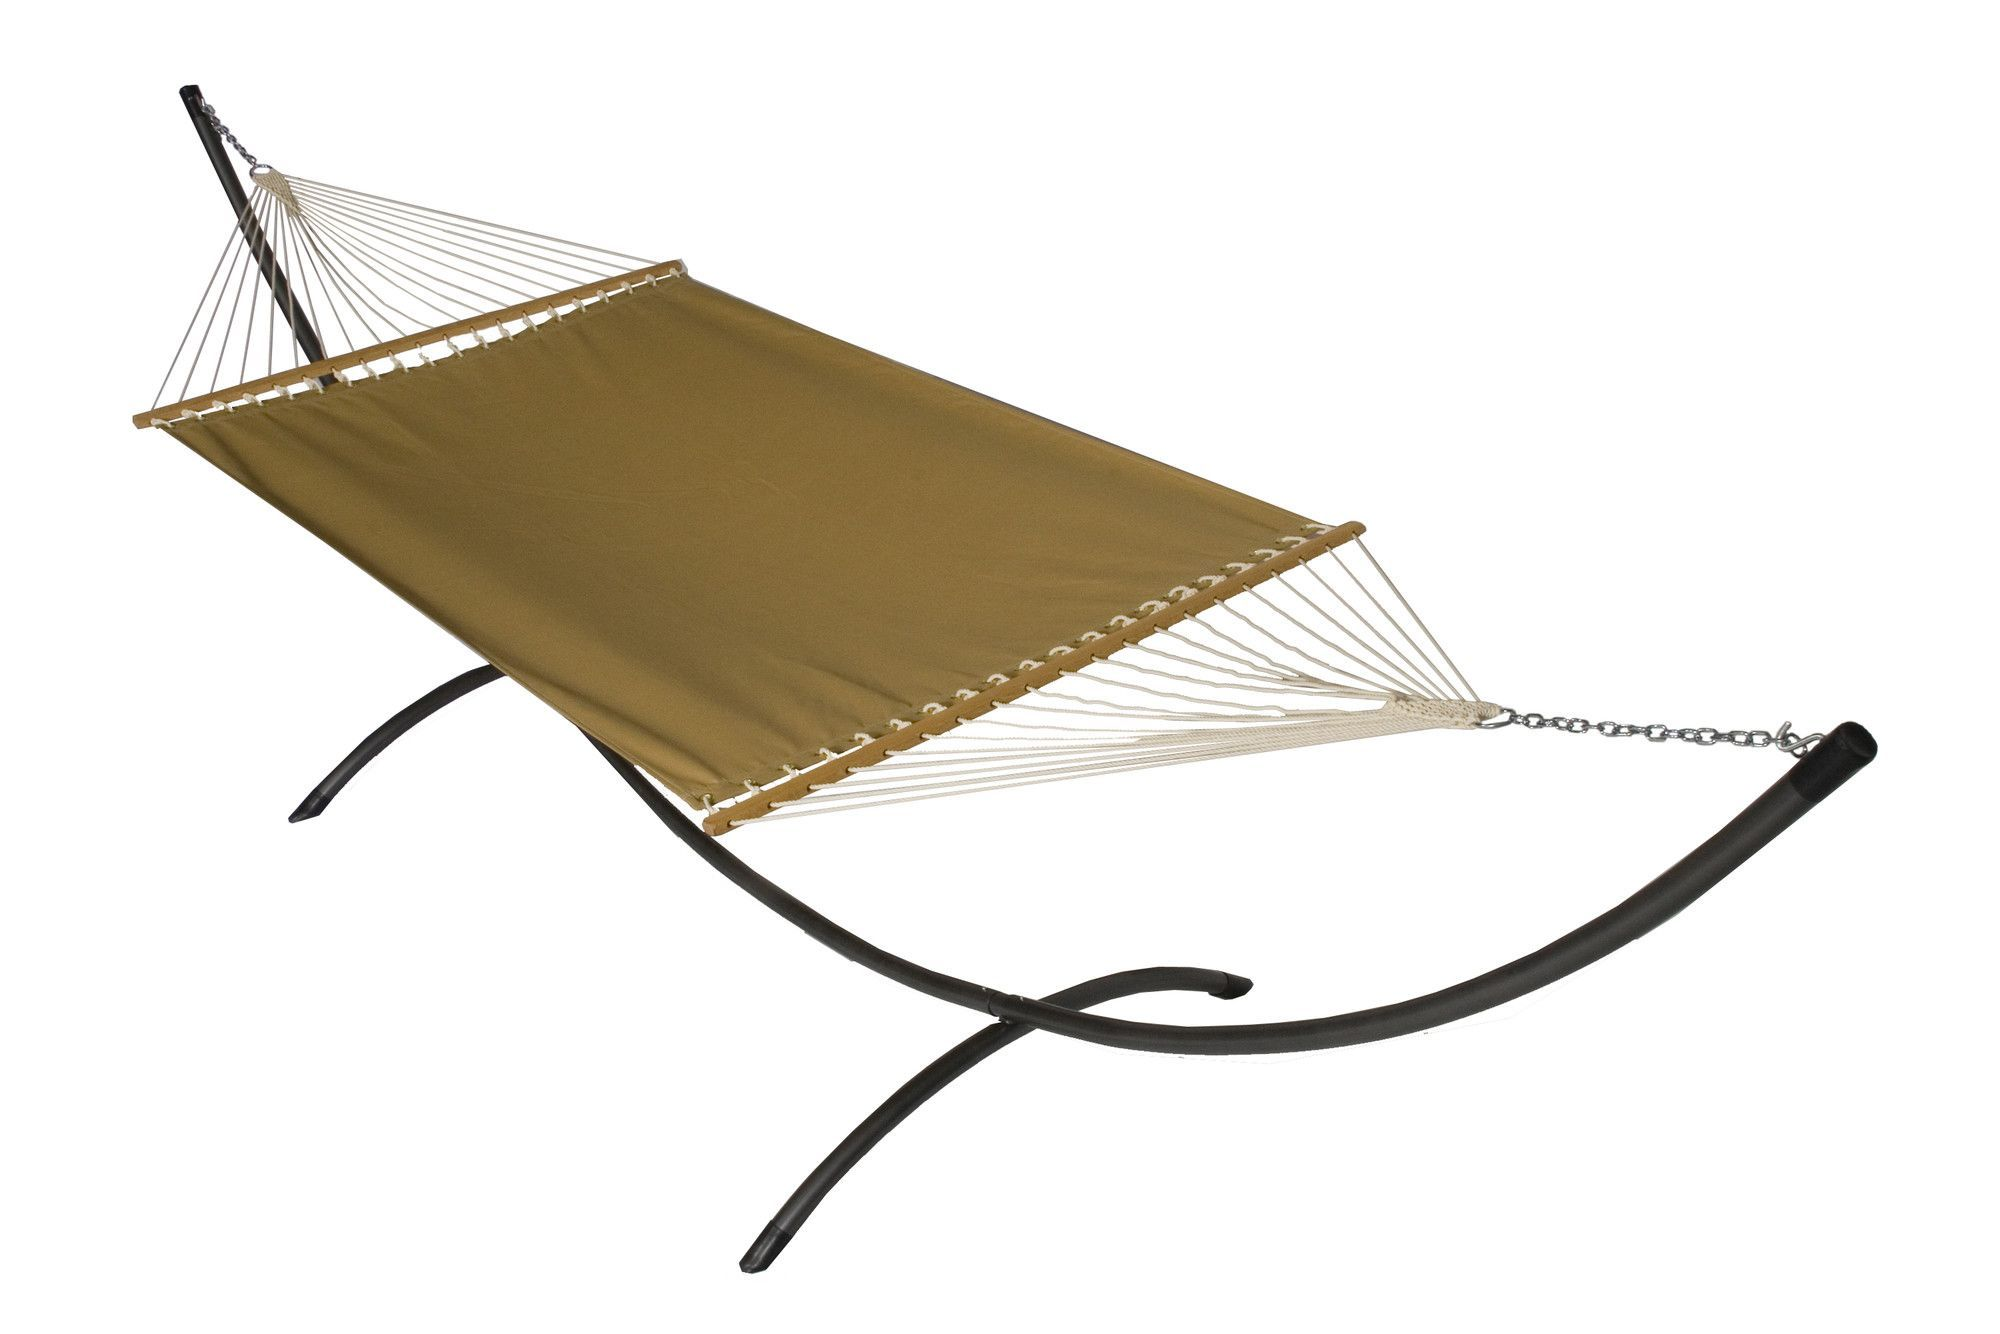 Phat tommy sunbrella dupione deluxe fabric hammock products